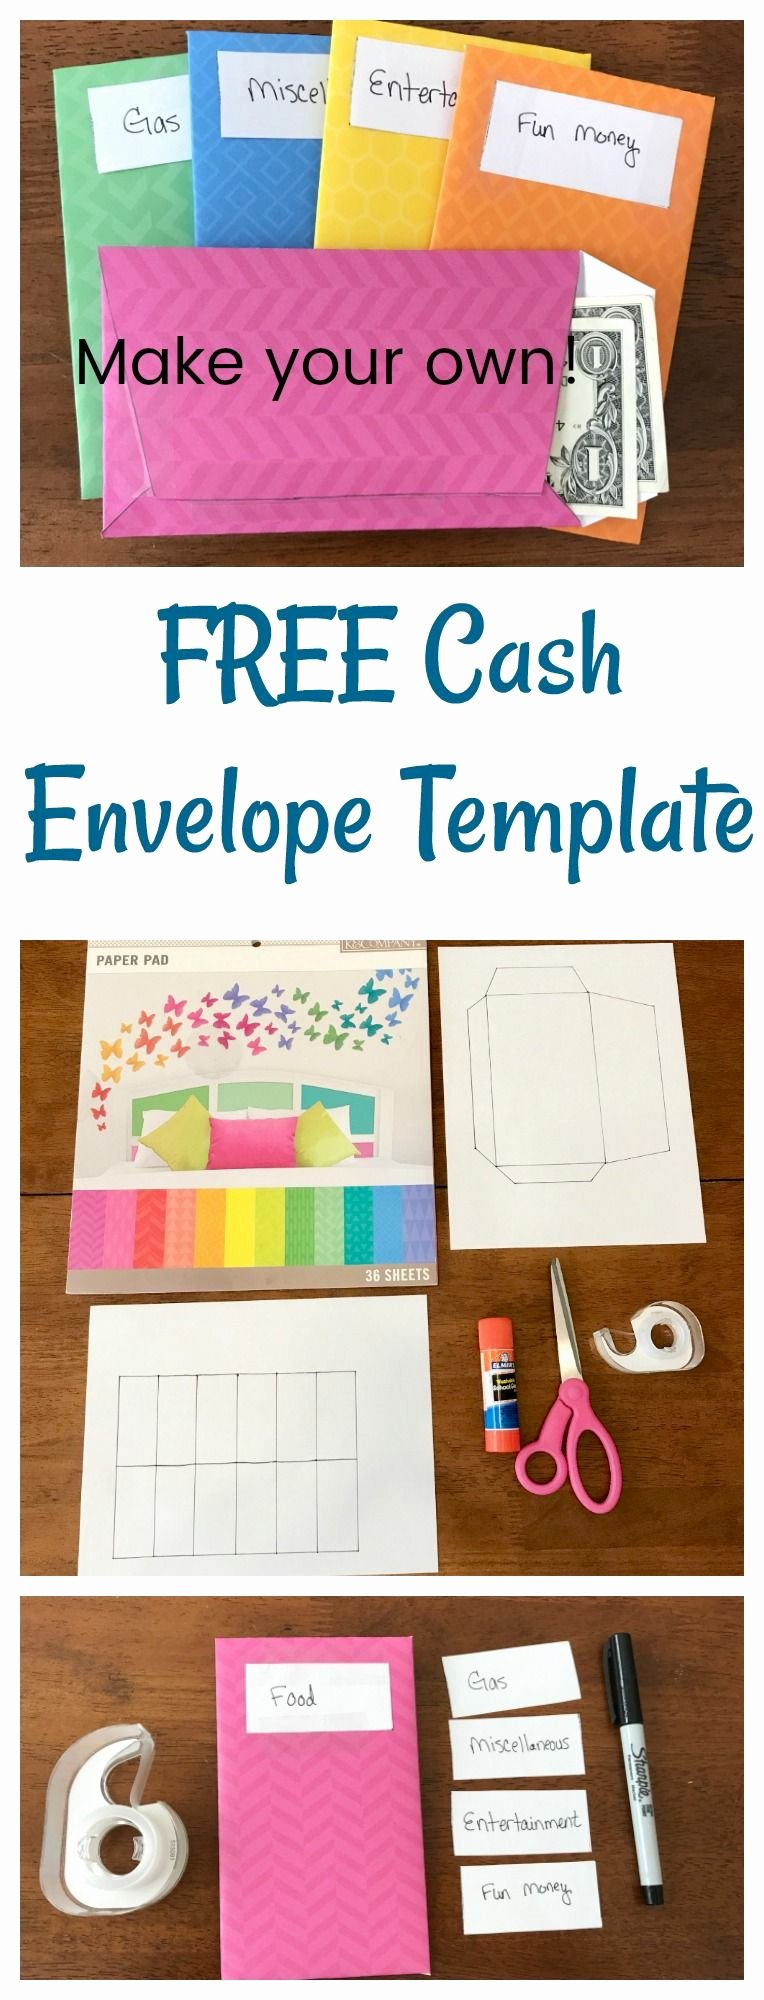 Make Your Own Envelopes Templates Fresh Learn How to Make Your Own Cash Envelopes with Free